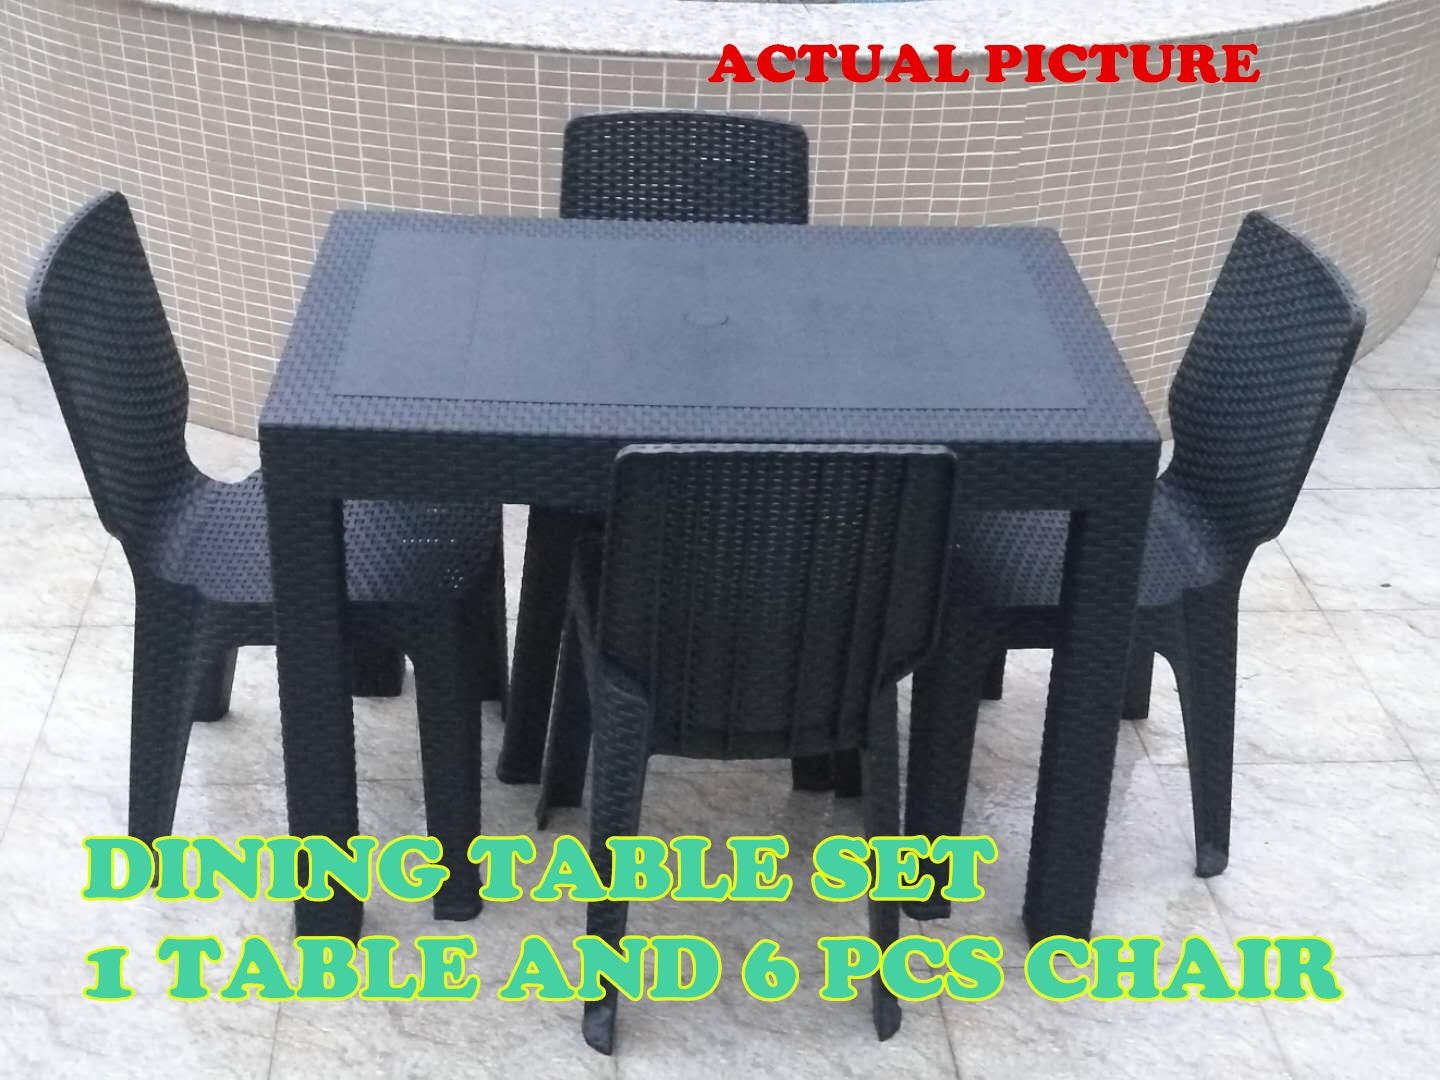 Dining Table Set (table And 6pcs Chair) Outdoor Table Indoor Table Dinning Room Set Furniture Set Rattan Design Sunrise 24x38 By Lucas Houseware Collection.